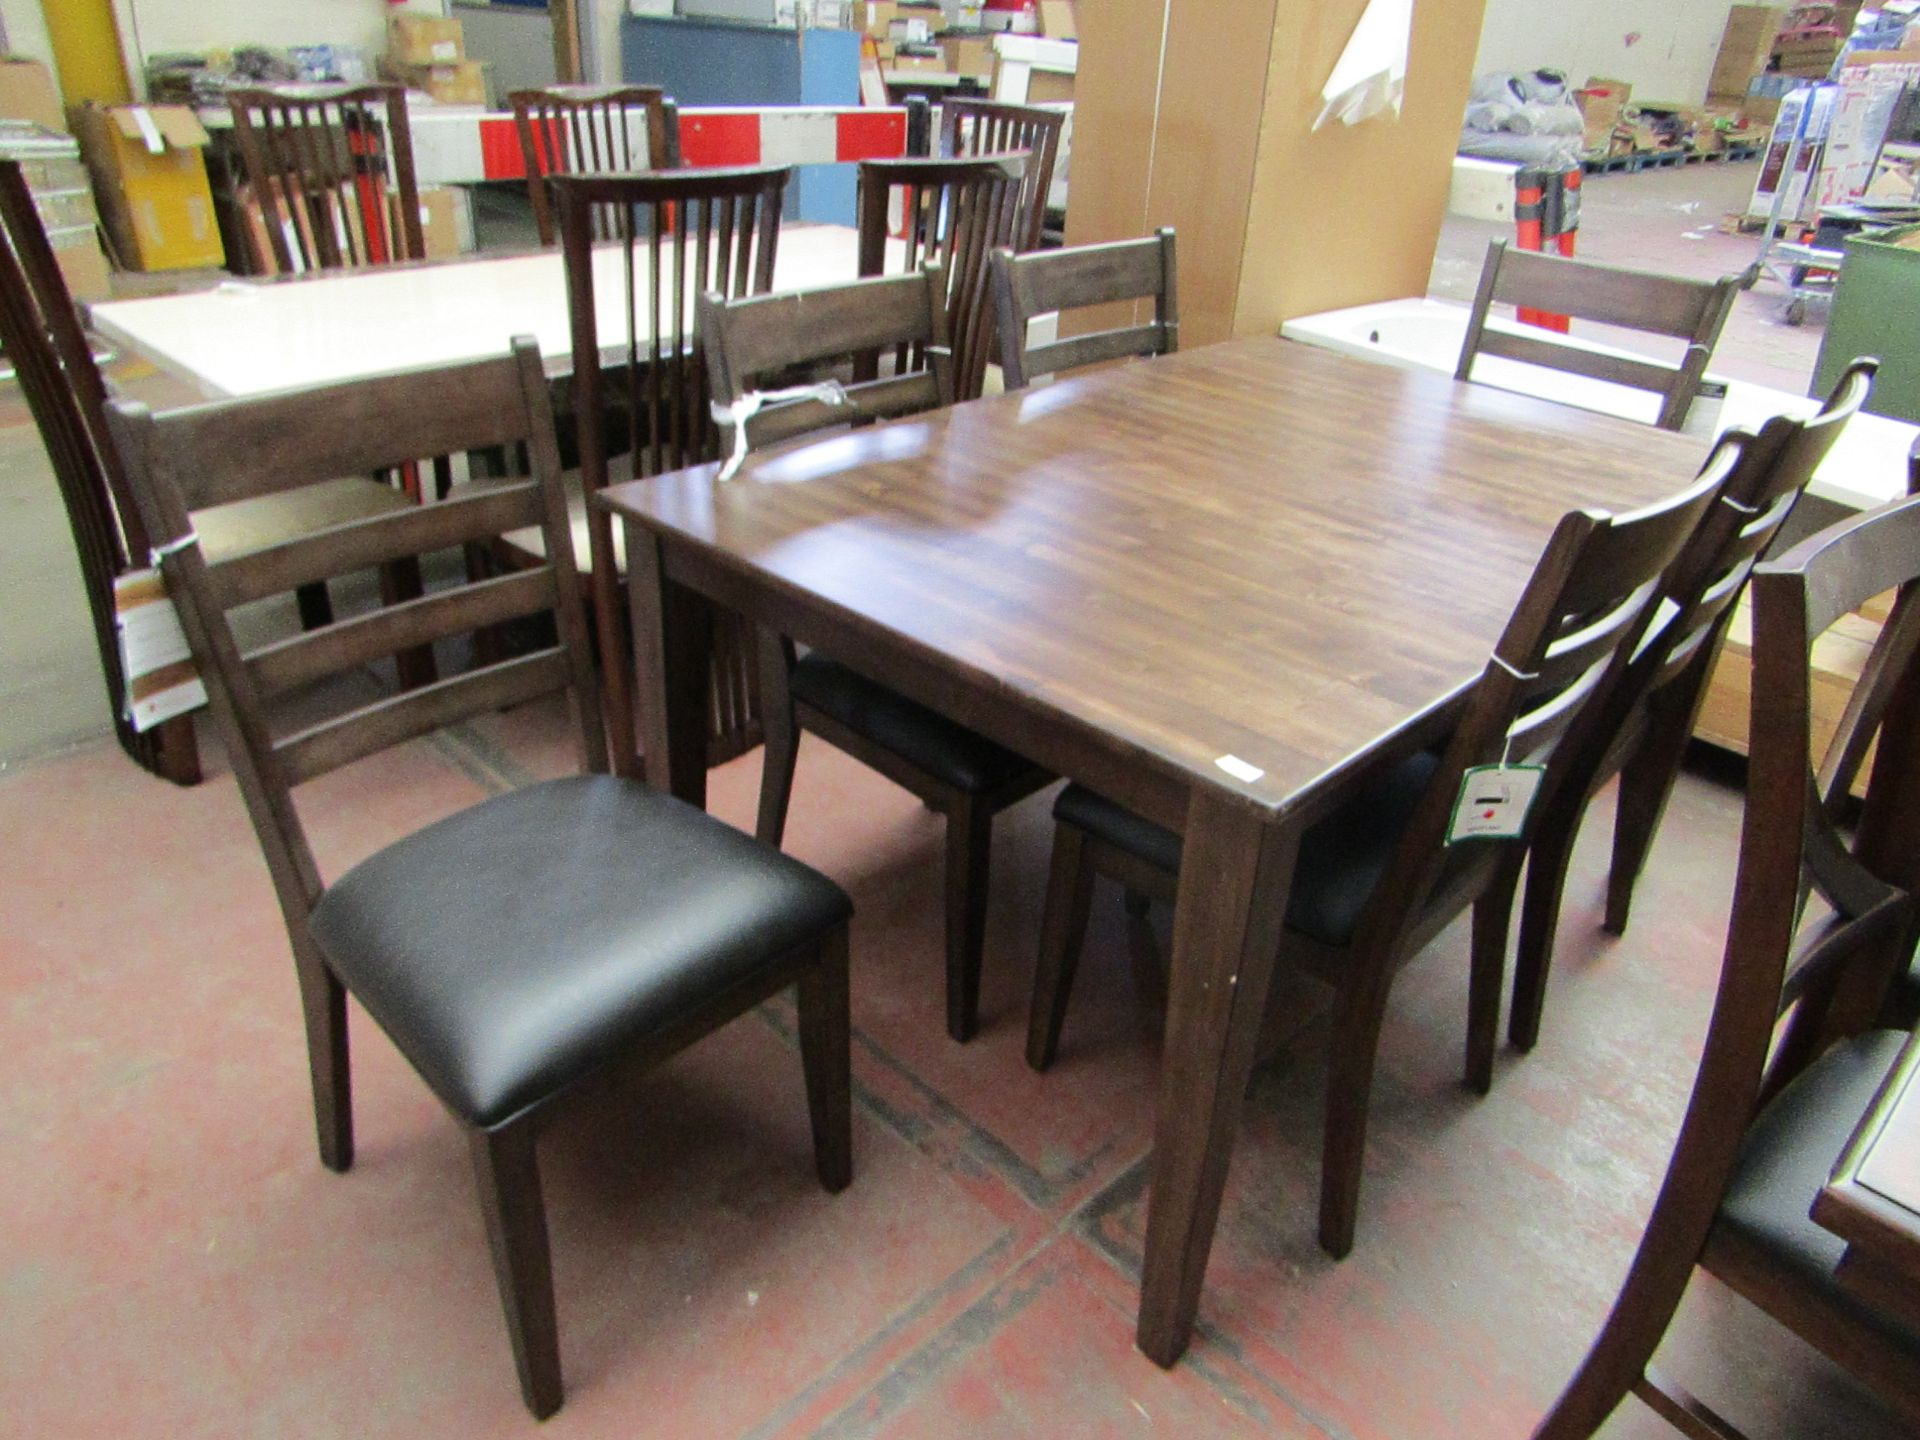 Lot 22 - Imagio Solid wood 7 piece extending dining set, few small marks on the table and chairs but